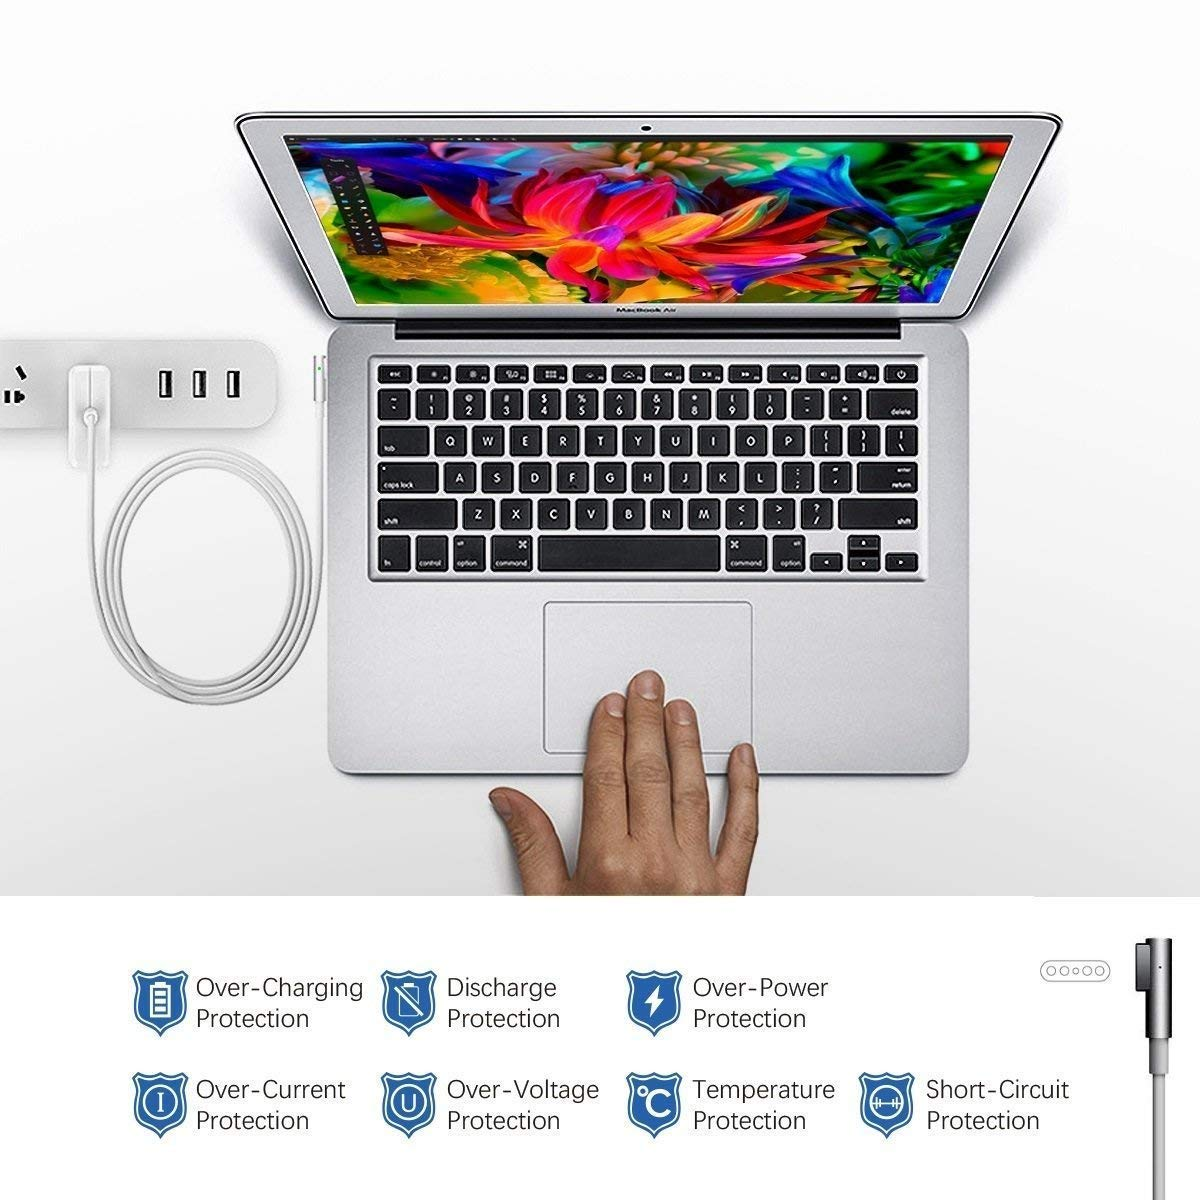 QIANXIANG Laptop Charger, L Tip/Shape/Style 60W AC Magnetic Connect Replacement Laptop Charger,